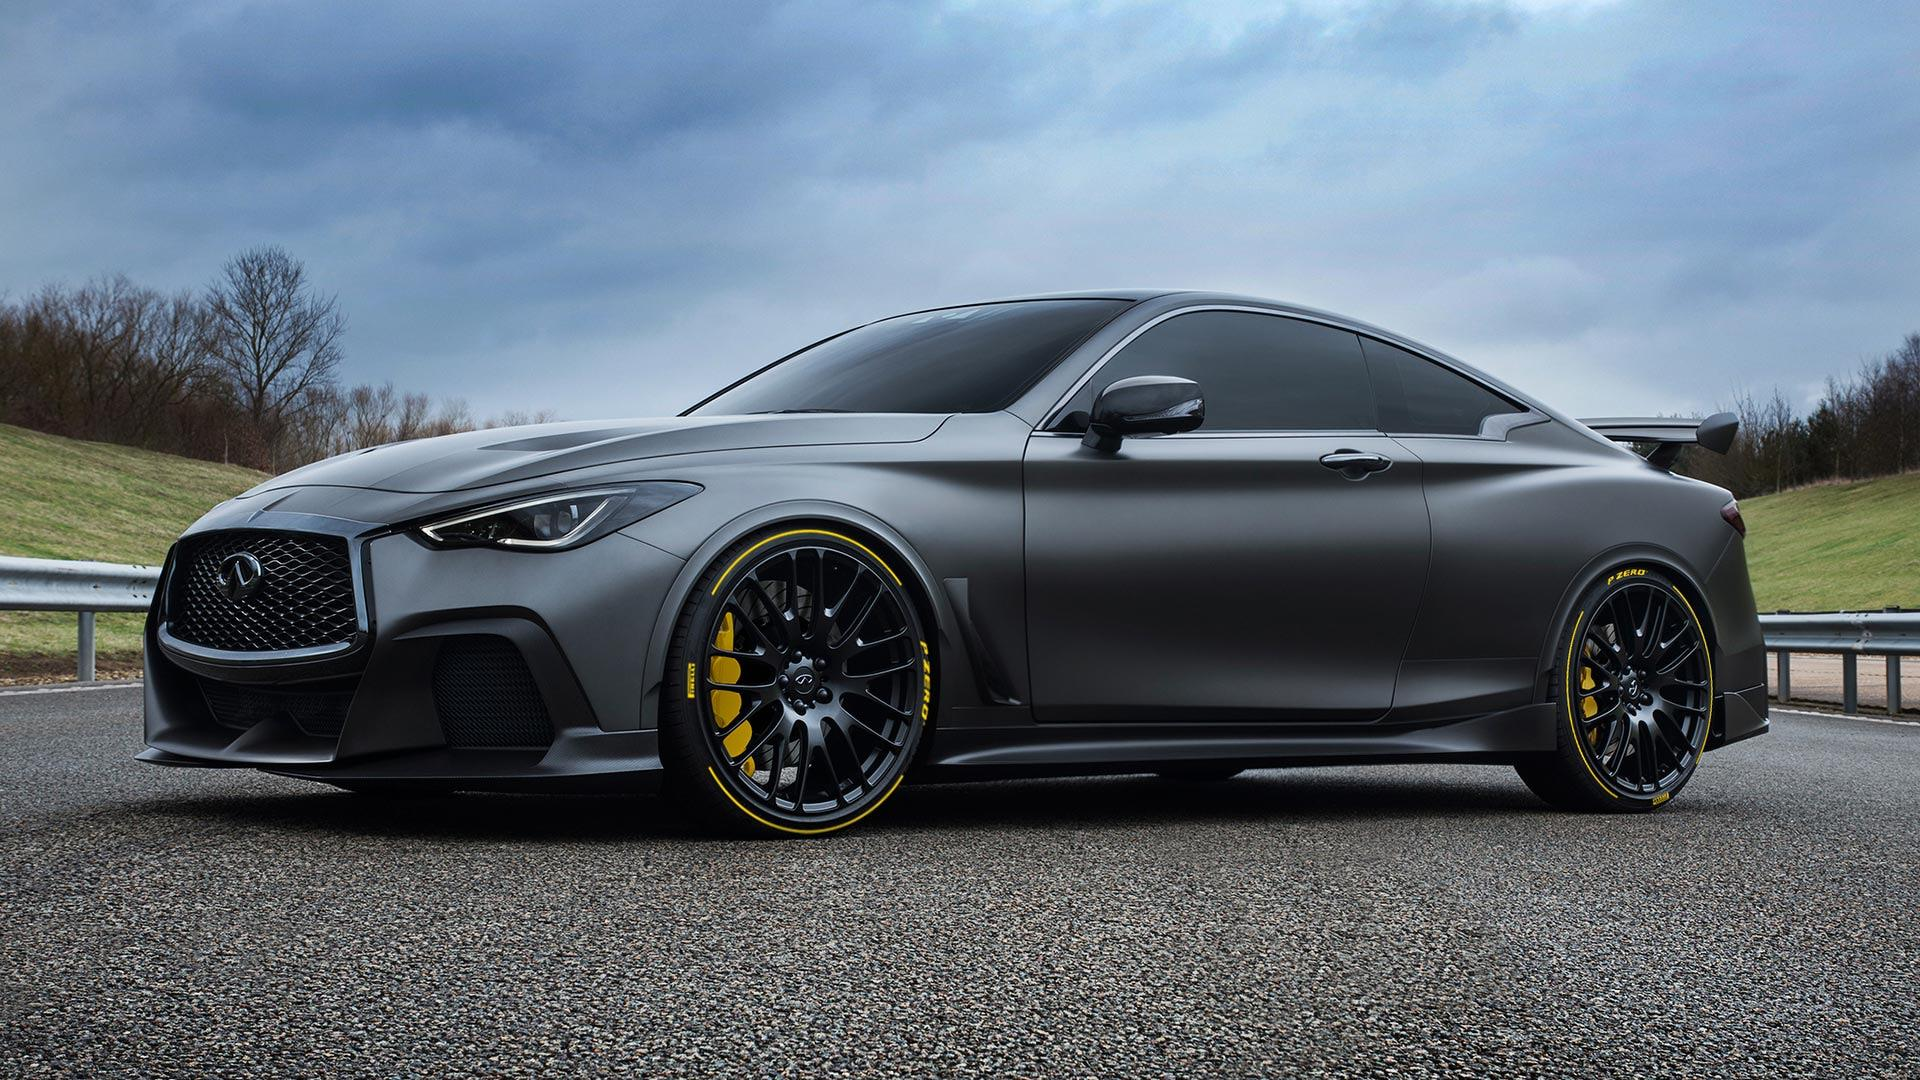 Infiniti Q60 Project Black S Gets Custom Tires From Pirelli